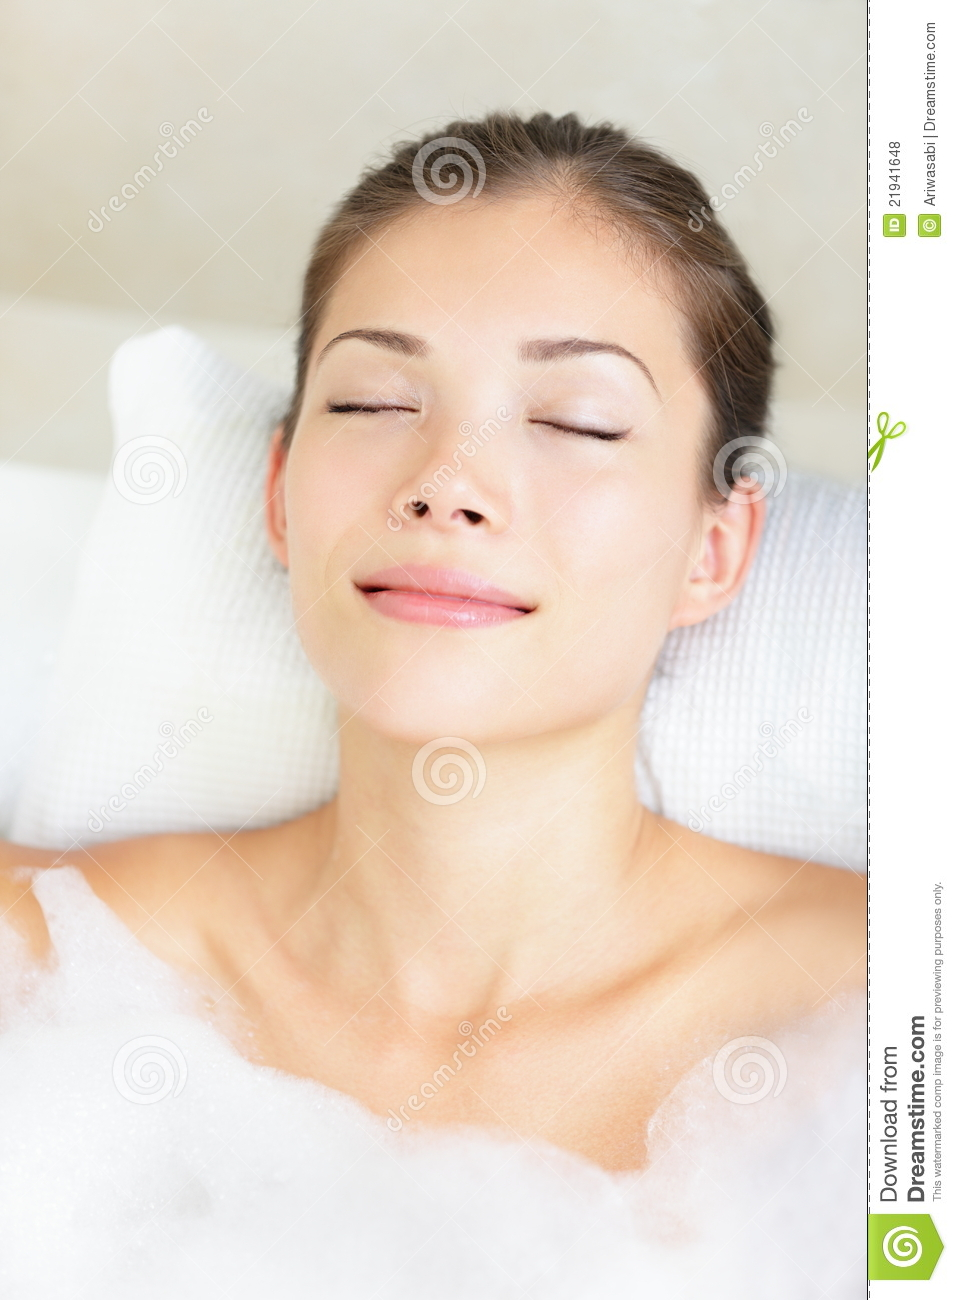 Woman In Bath Relaxing Royalty Free Stock Photos Image